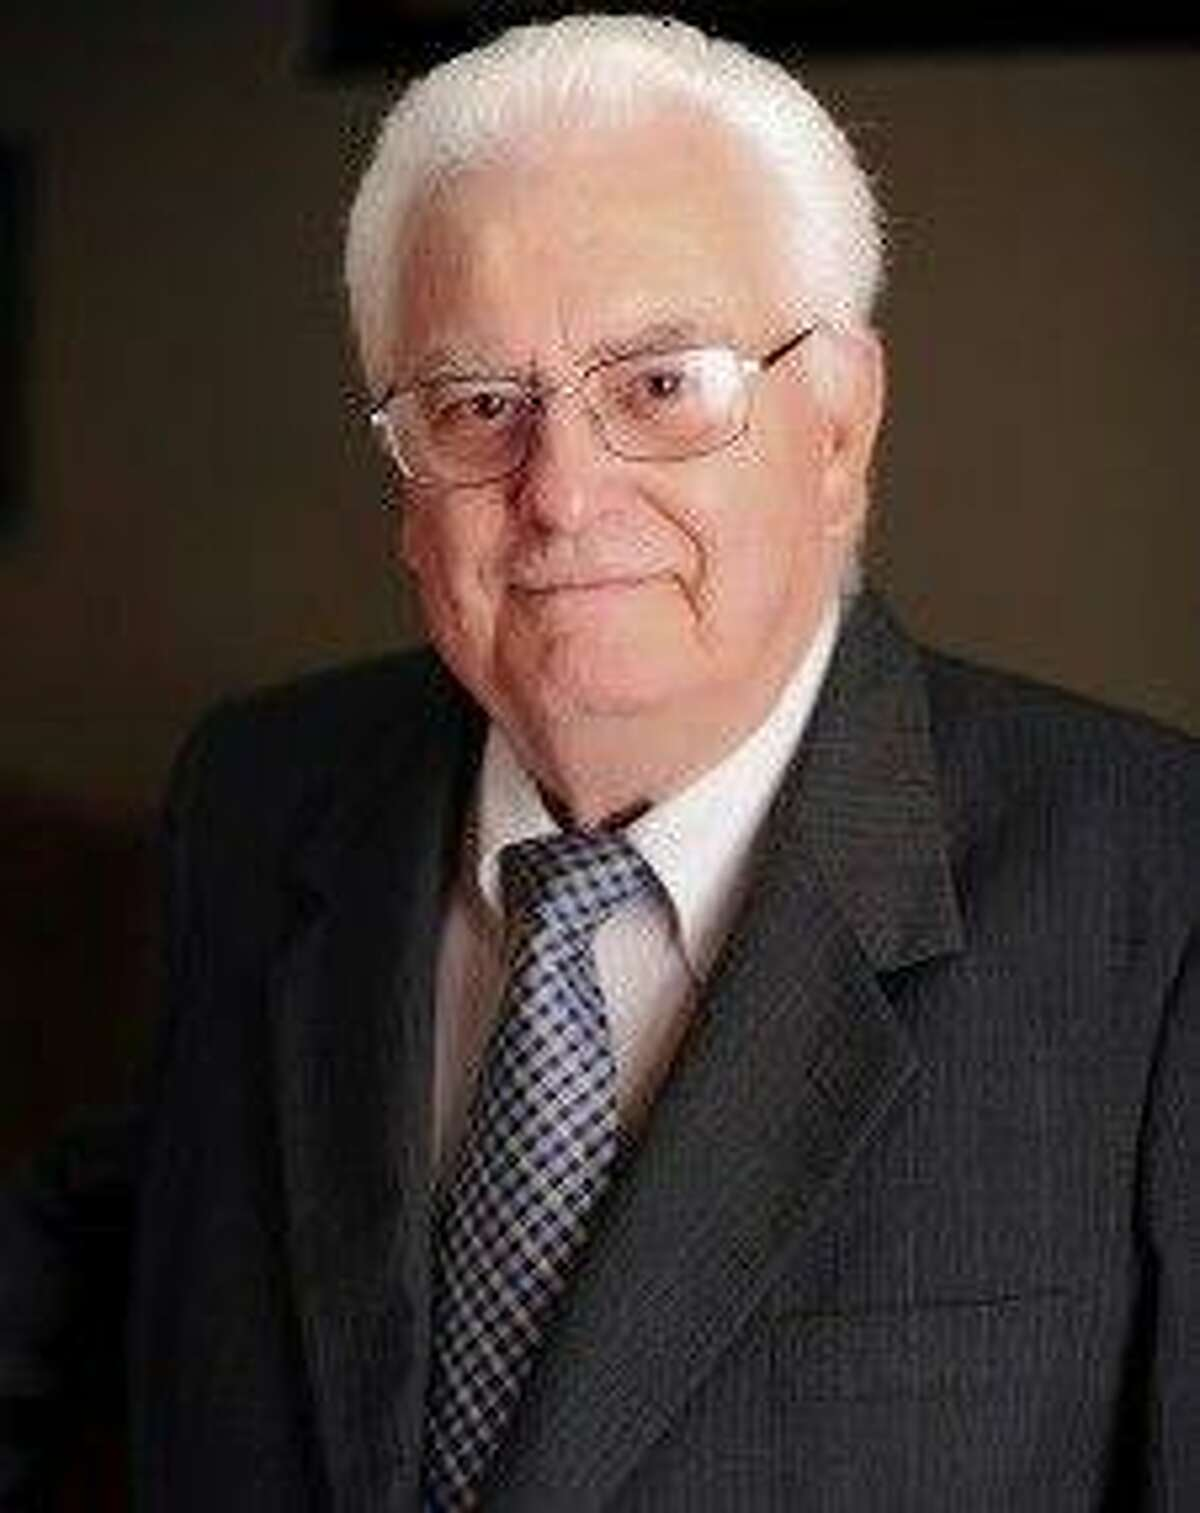 Bert Lynch, a CPA for 50 years in Conroe and a past president of the Rotary Club of Conroe, died on Thanksgiving Day.